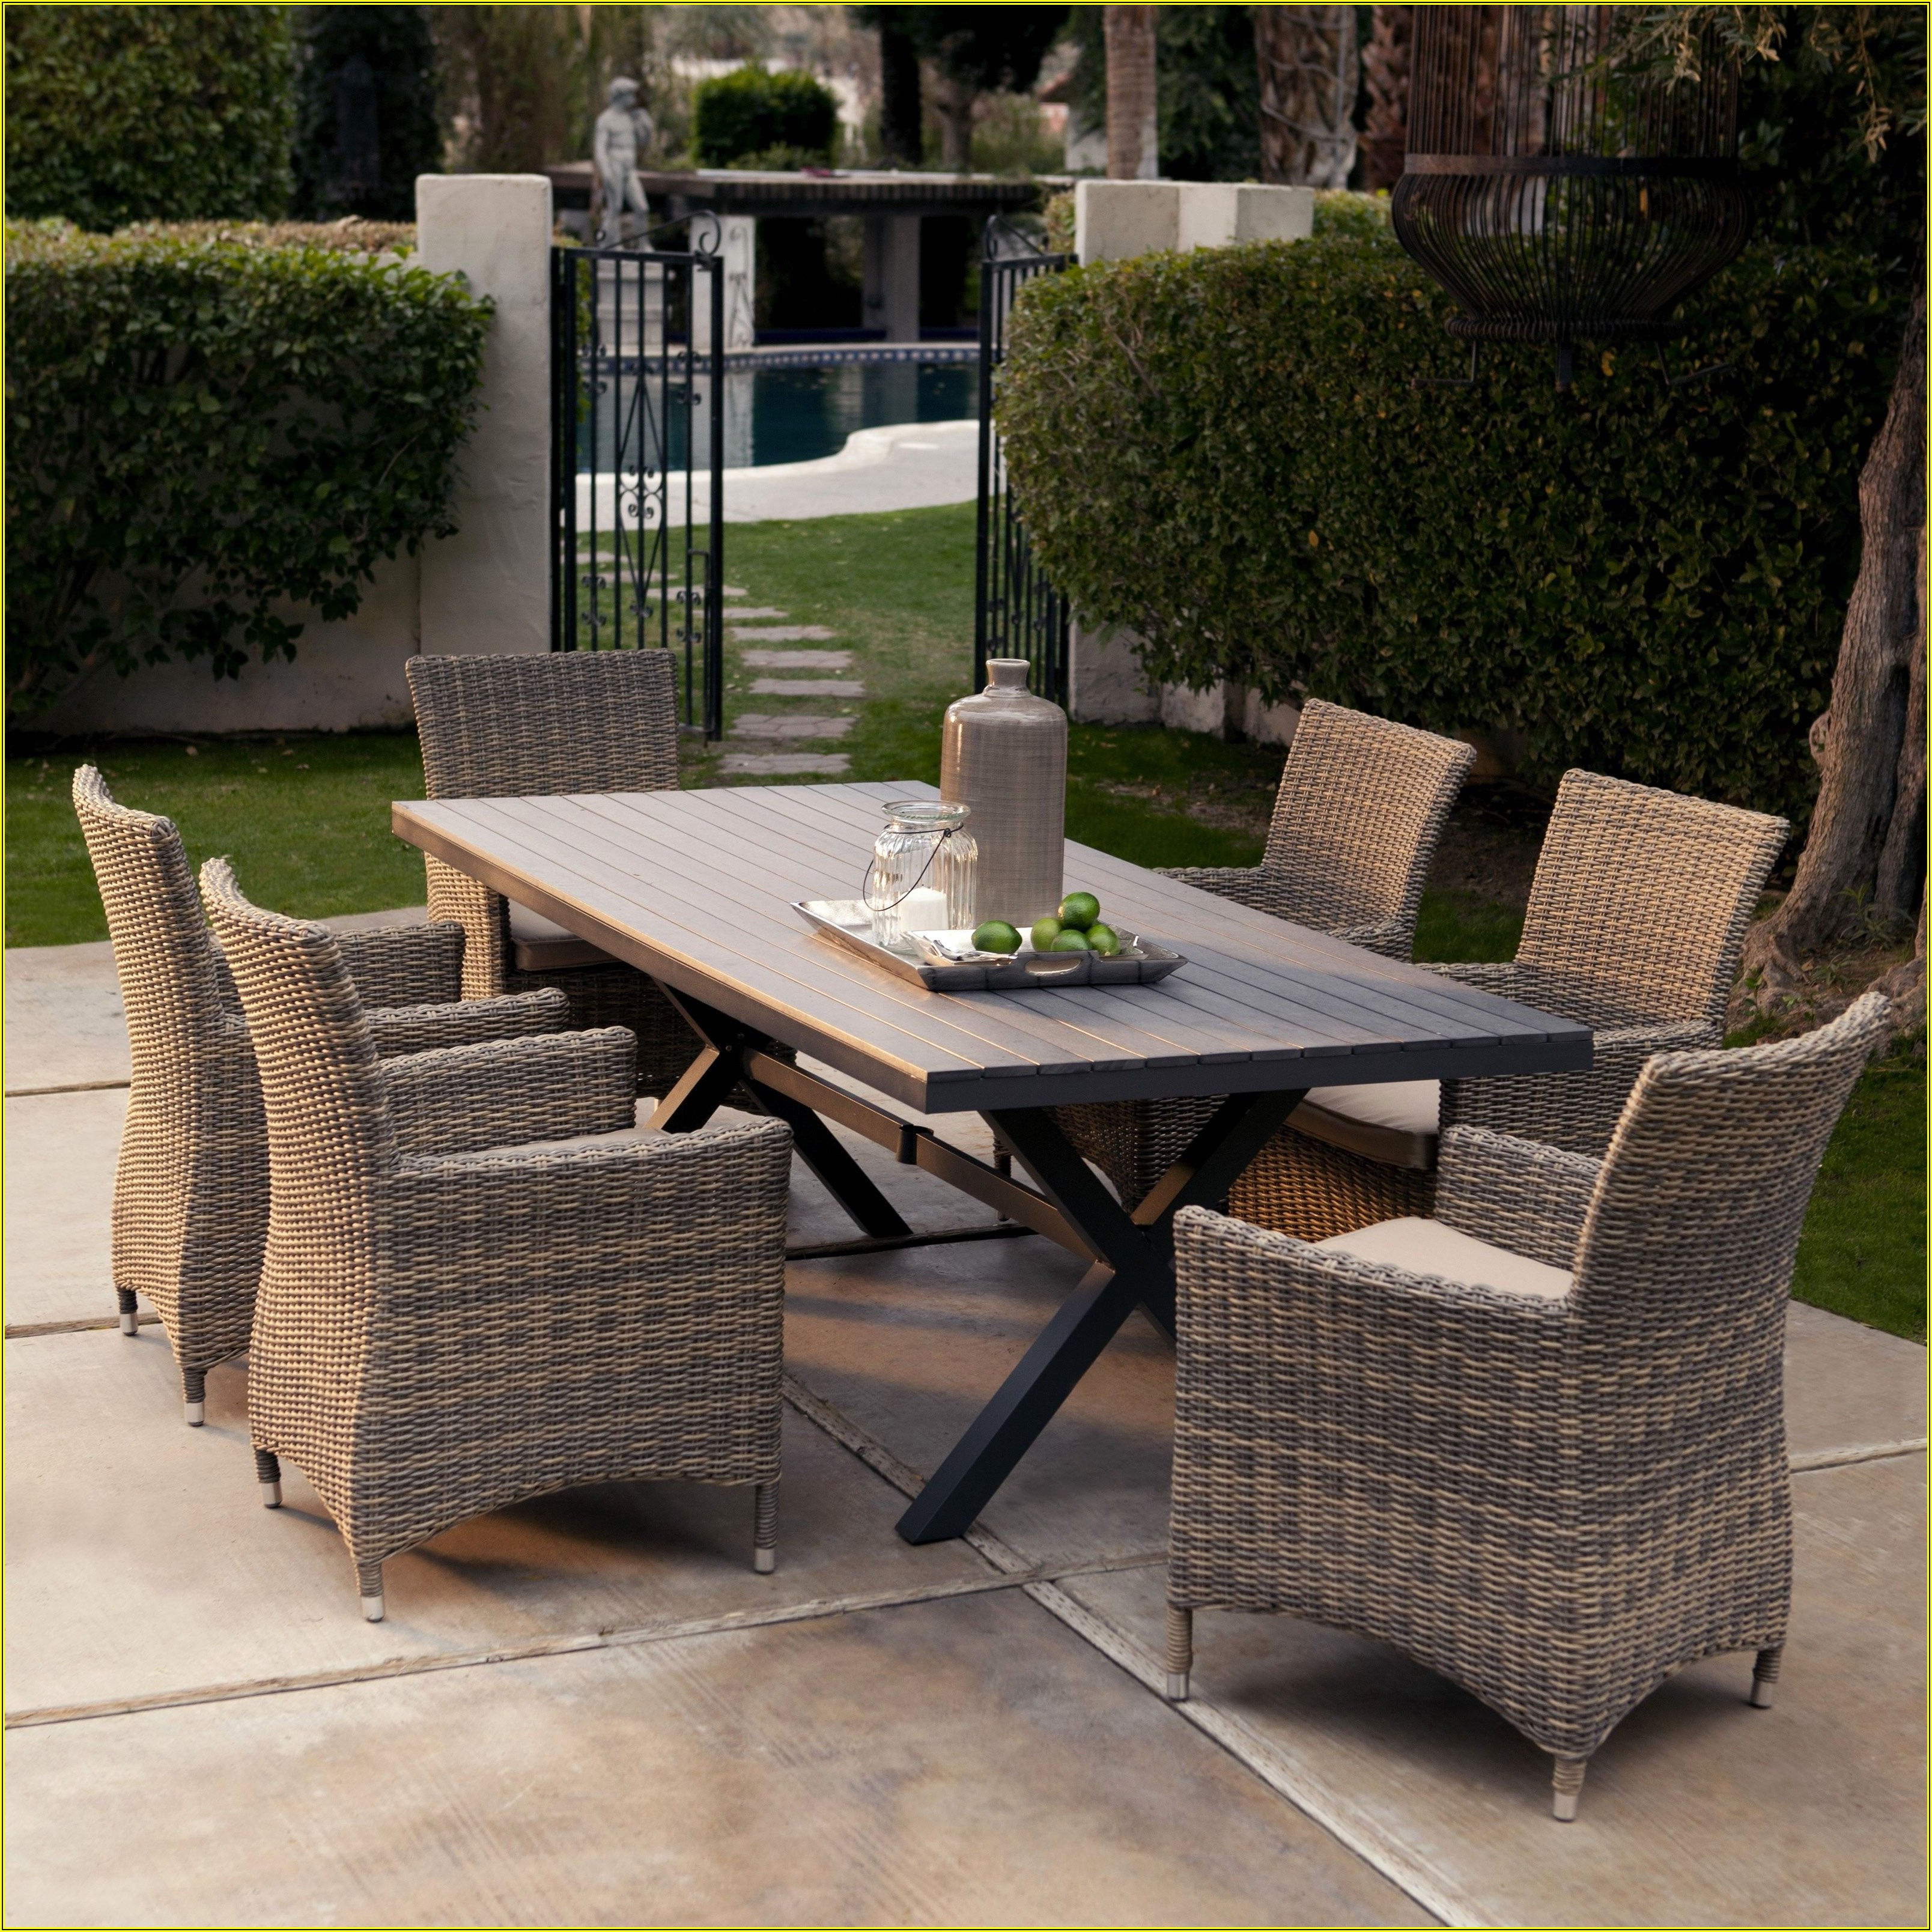 Patio Furniture Pick Up Today